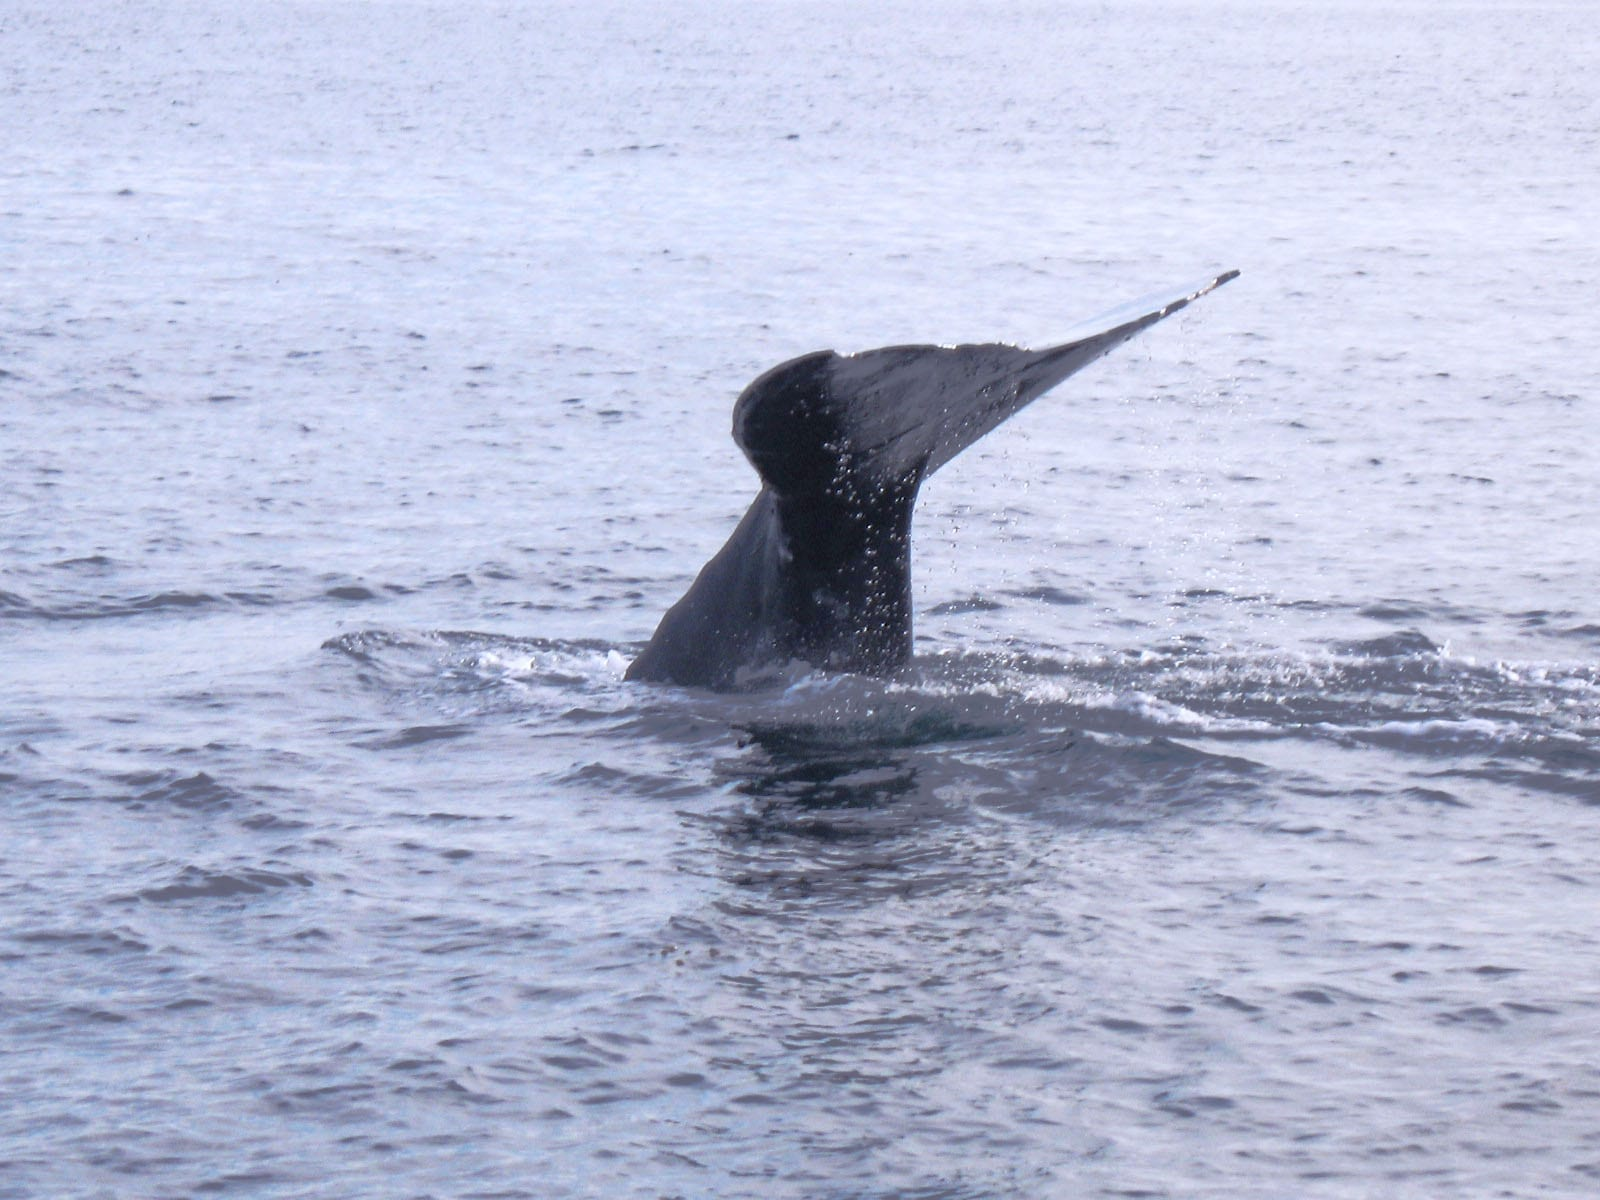 This was one large Gray whale.